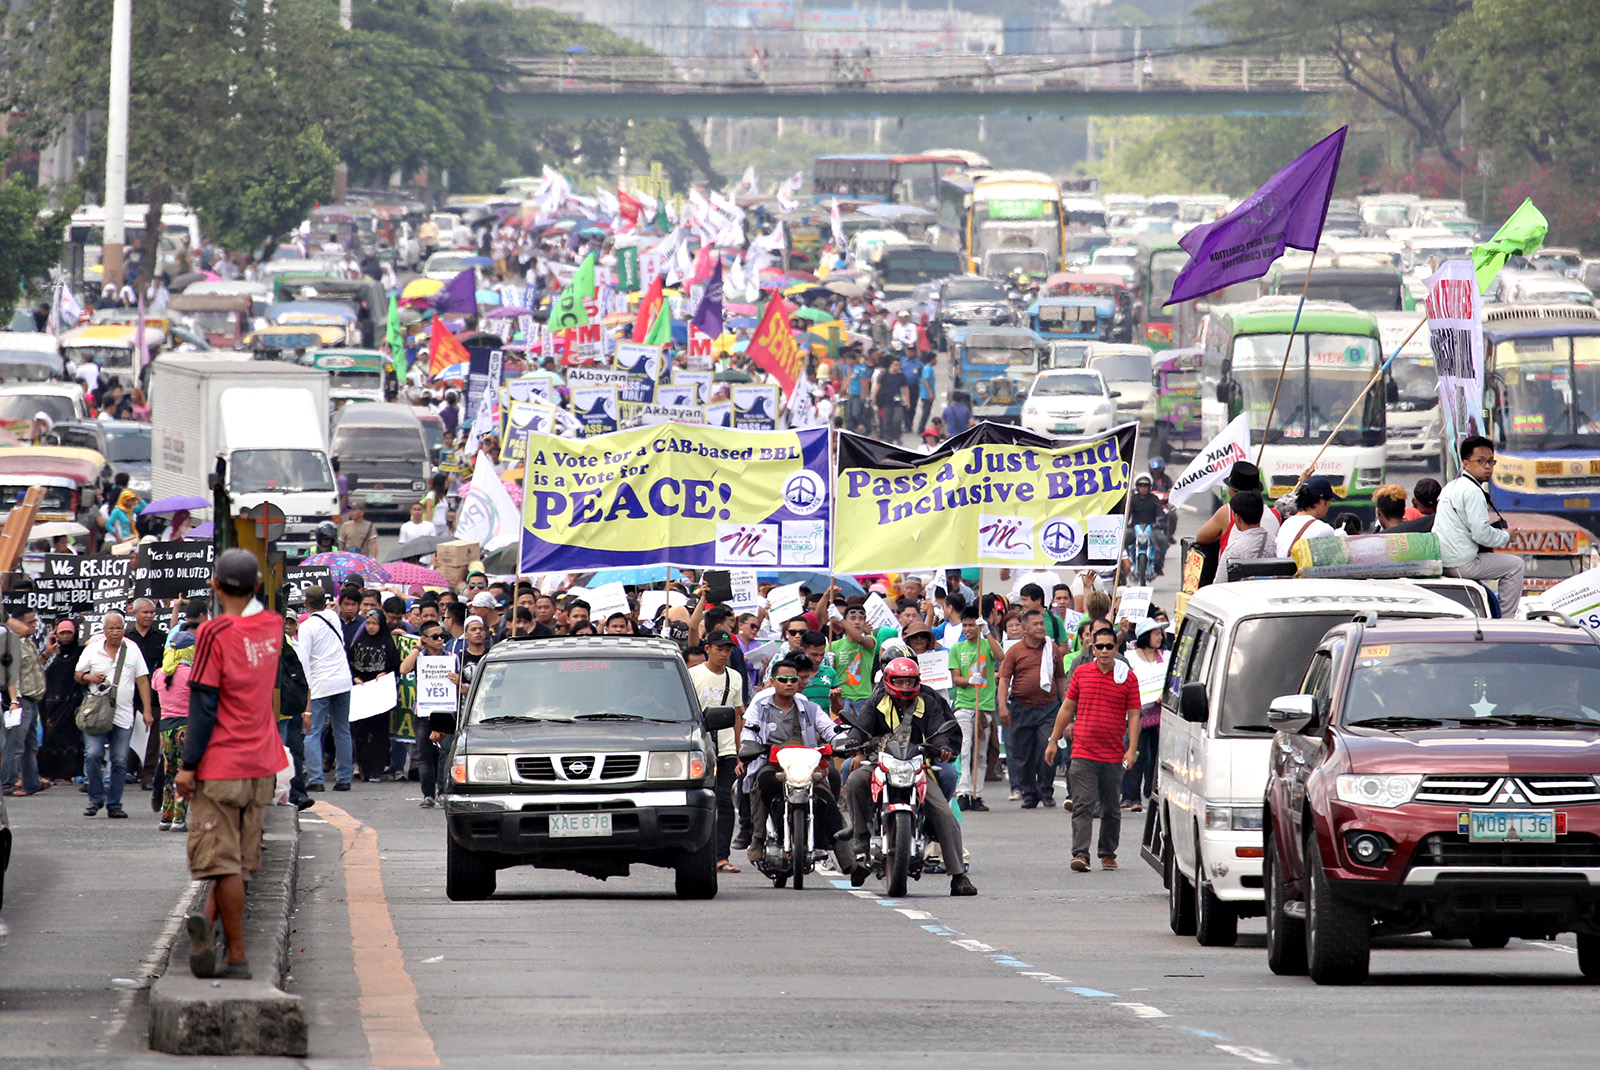 Thousands joined in the march towards the House of Representative from the Saint Peter Parish Church to call for the passing of the Bangsamoro Basic Law (BBL), Batasan Hills, Quezon City, May 11, 2015. MindaNews photo by Erwin Mascariñas